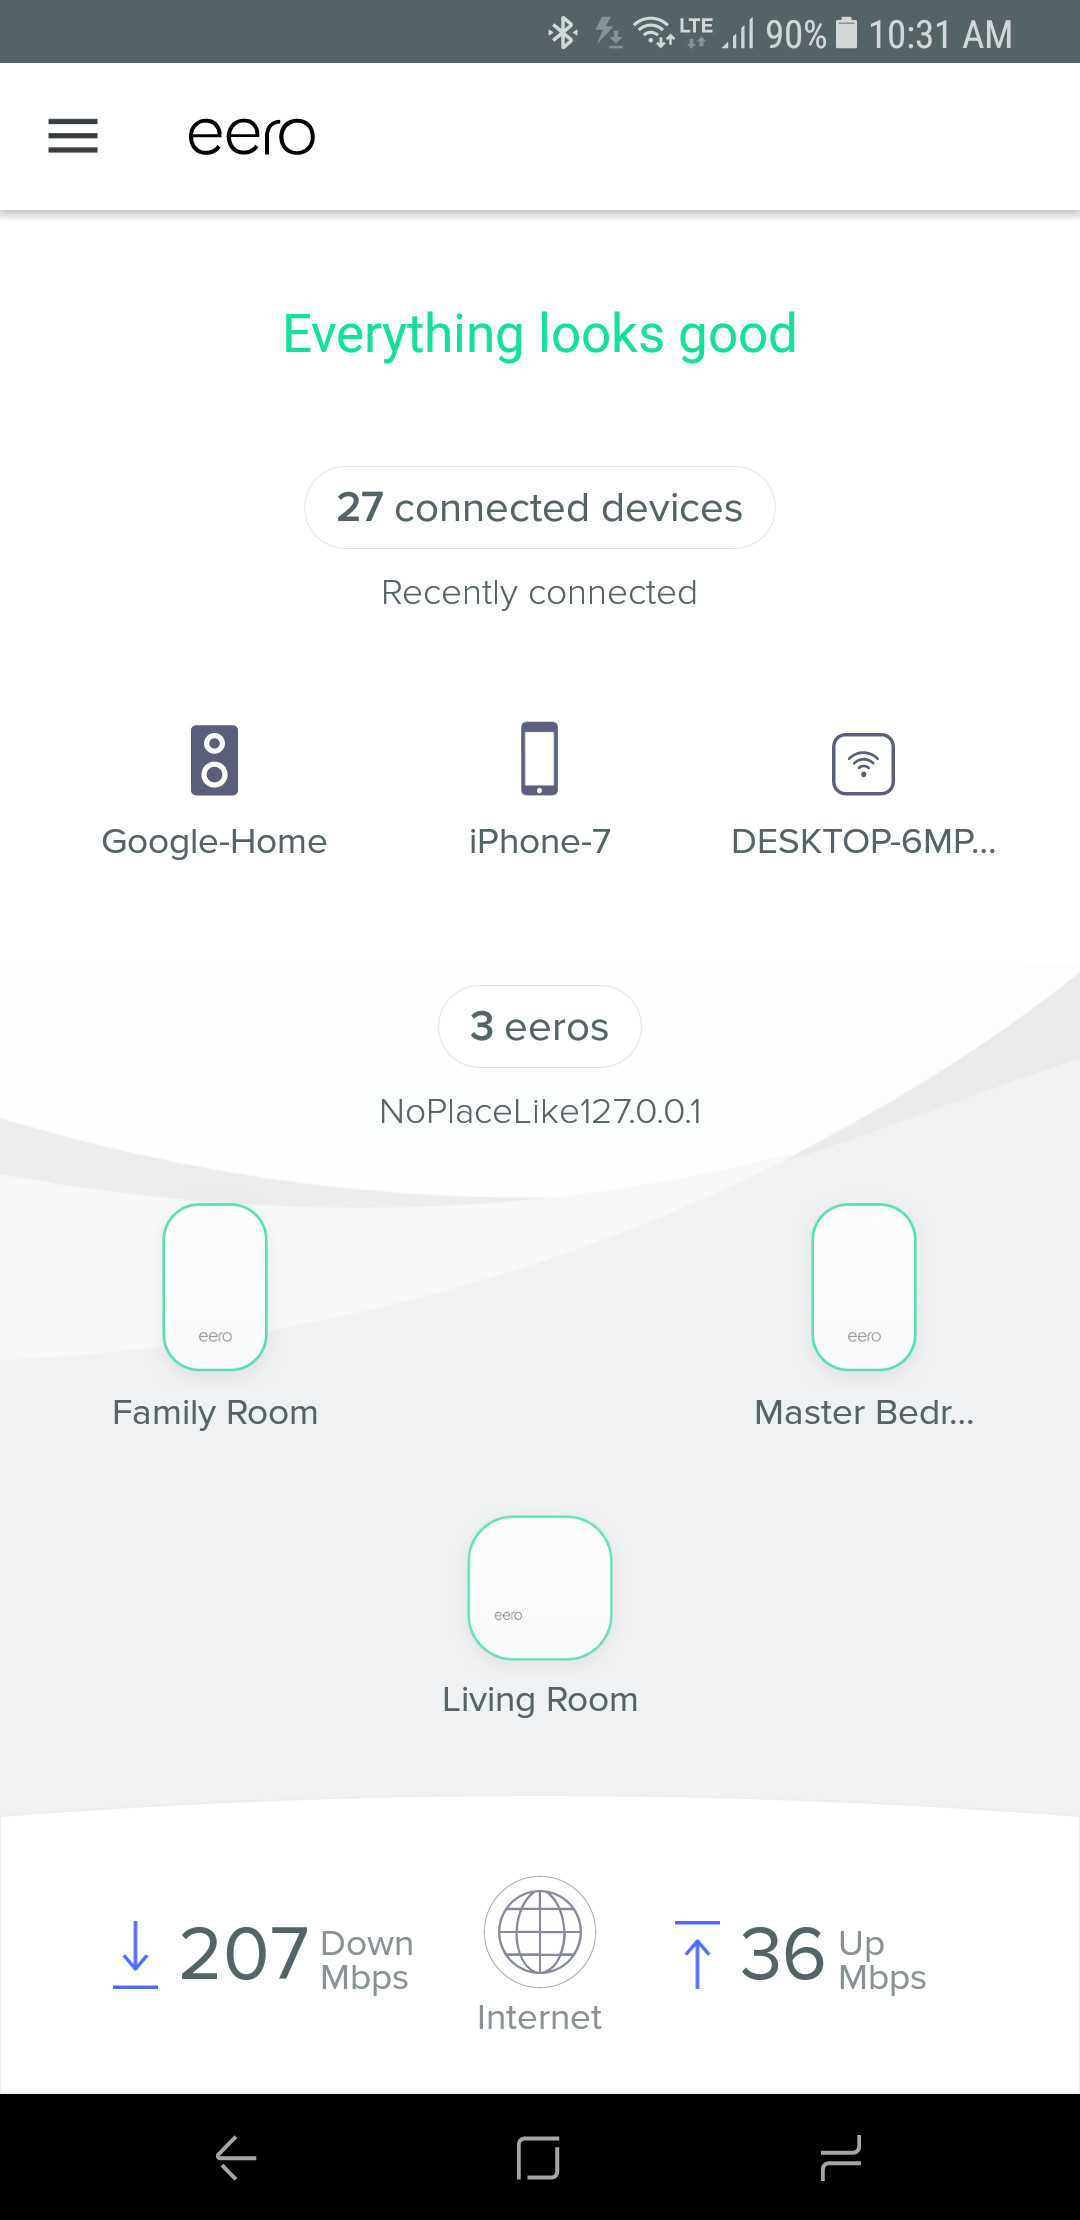 Eero 2nd Gen Review Better Looks And Even Performance Wireless Home Network Diagram Simple Based On My Experience In Own Four Bedroom 2500 Square Foot The New Performs Just As Well Prior Version Blanketing With A